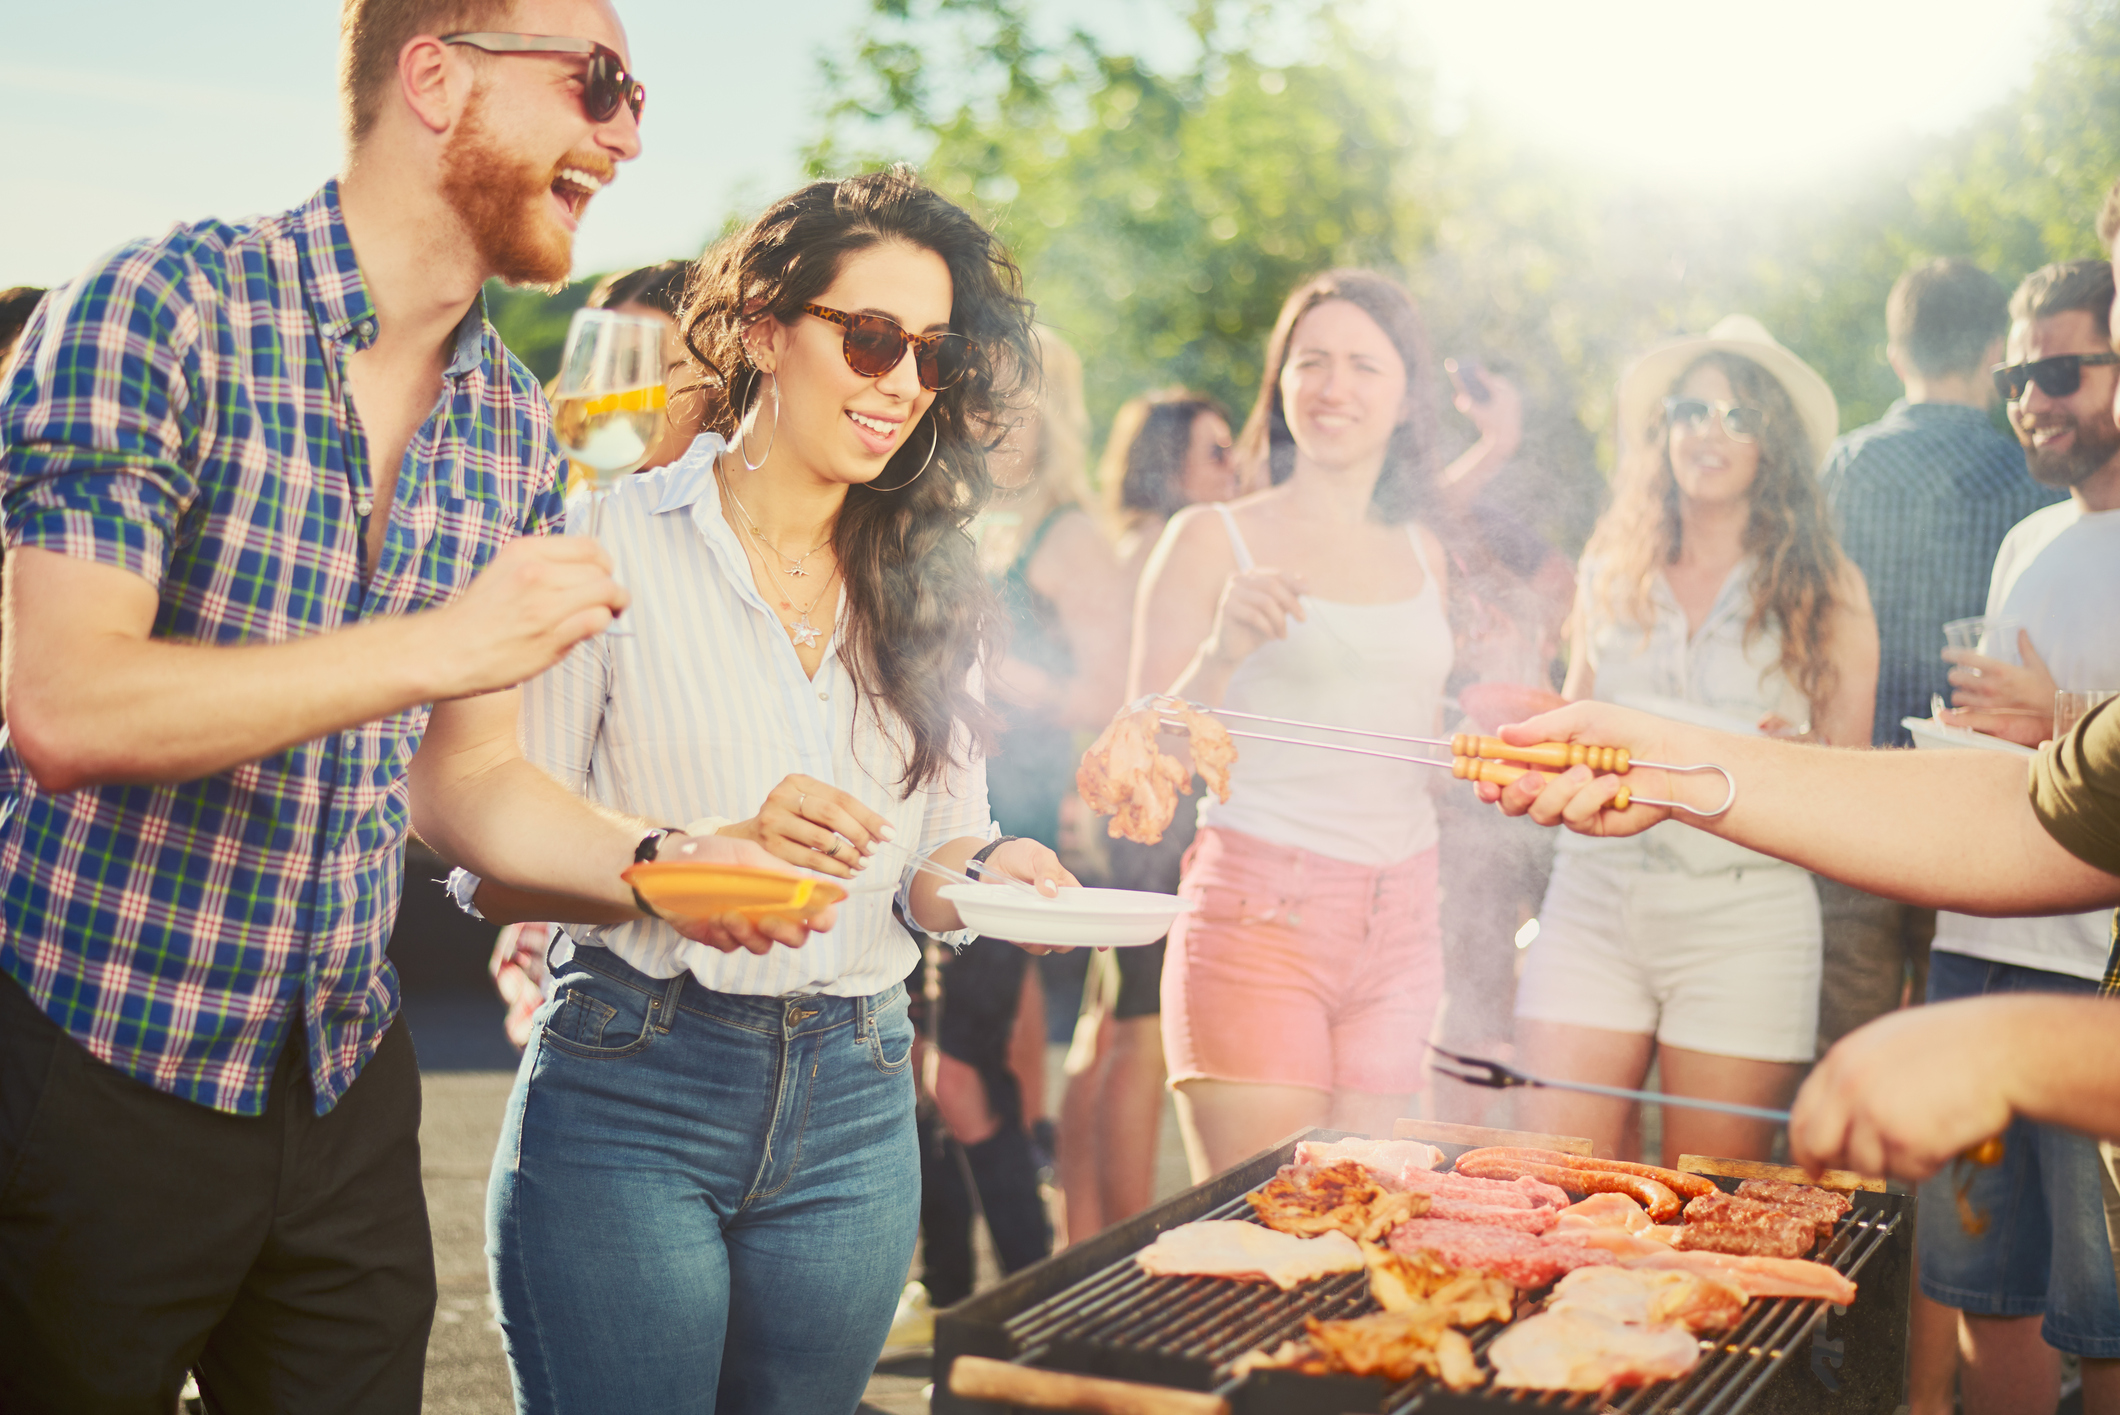 Small group of people standing around barbecue grill at outdoor party